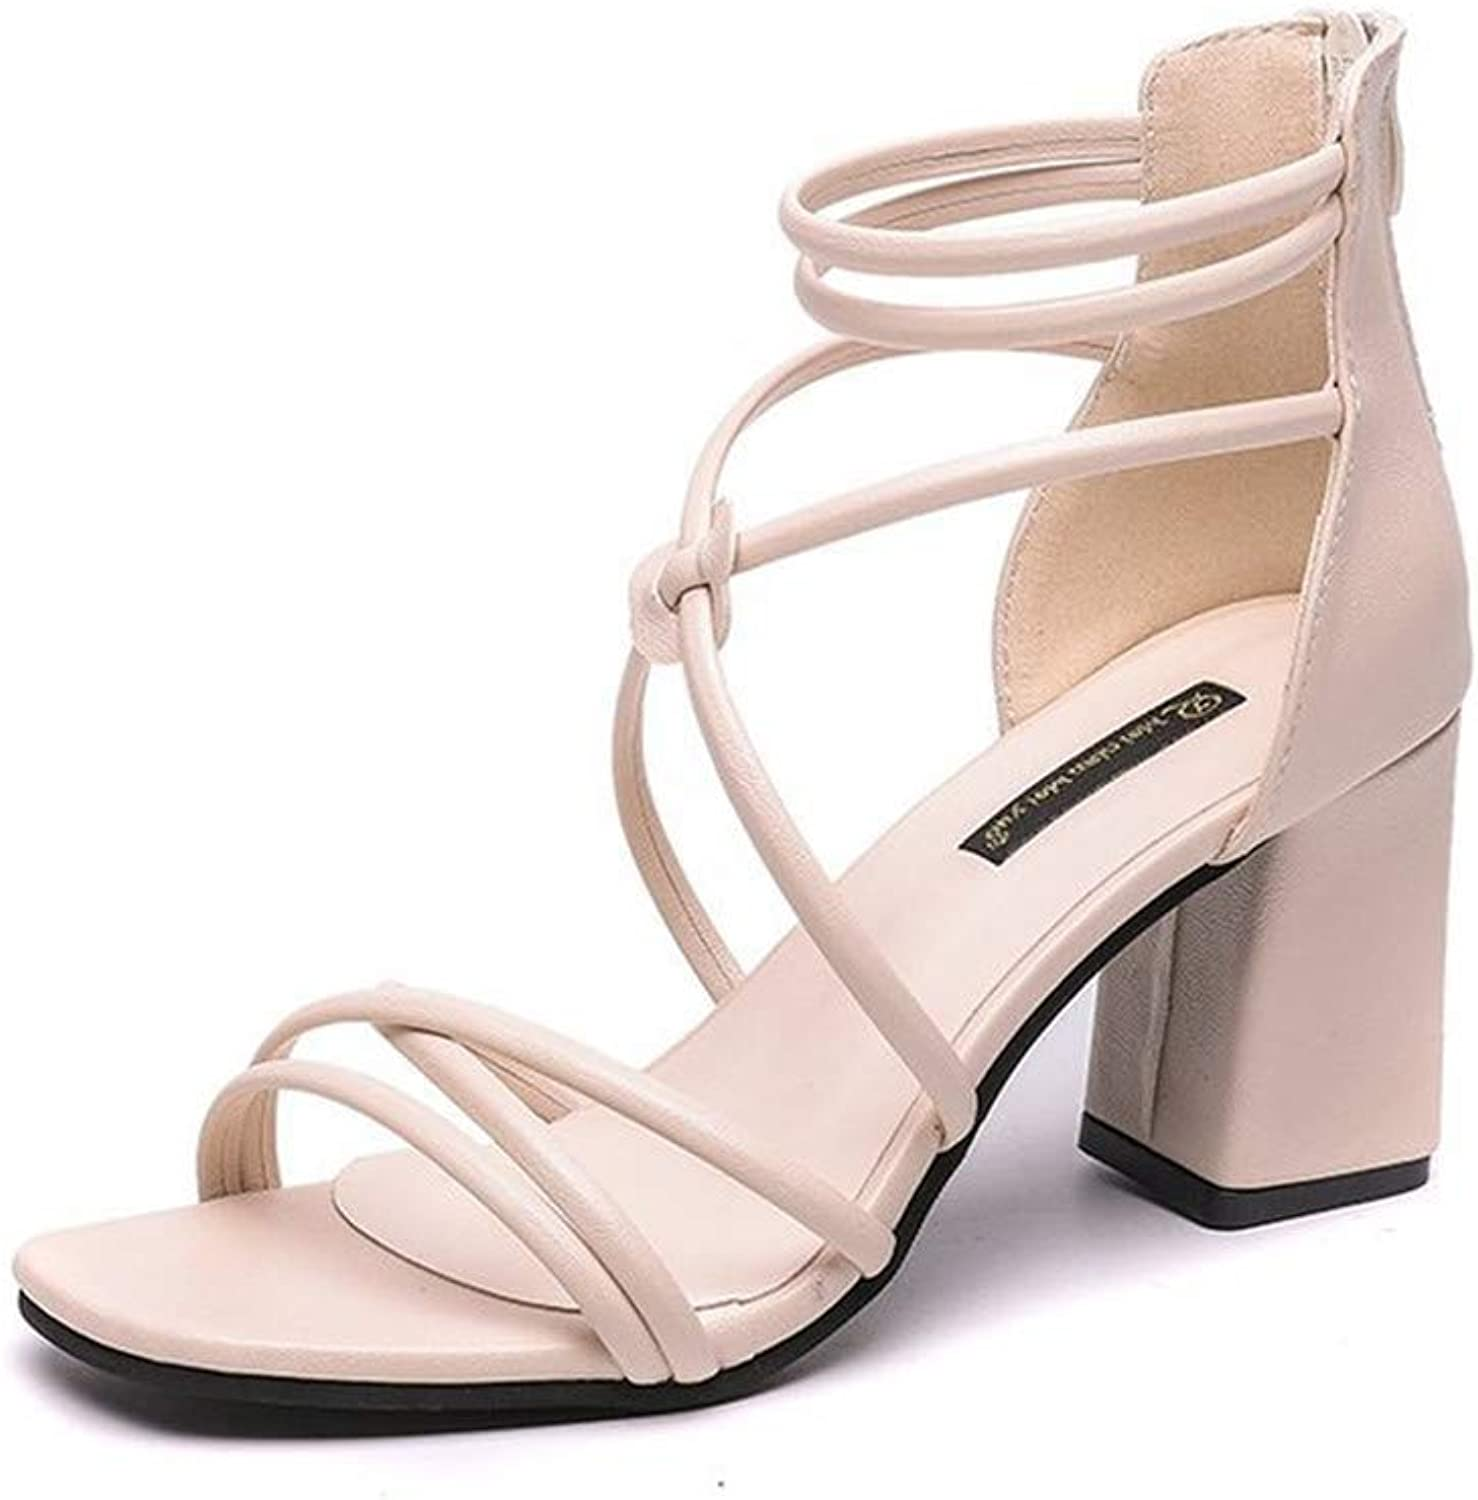 Medium-Heeled Sandals Roman and Mediterranean Style Sexy Open-Toed Thick-Heeled Women's shoes